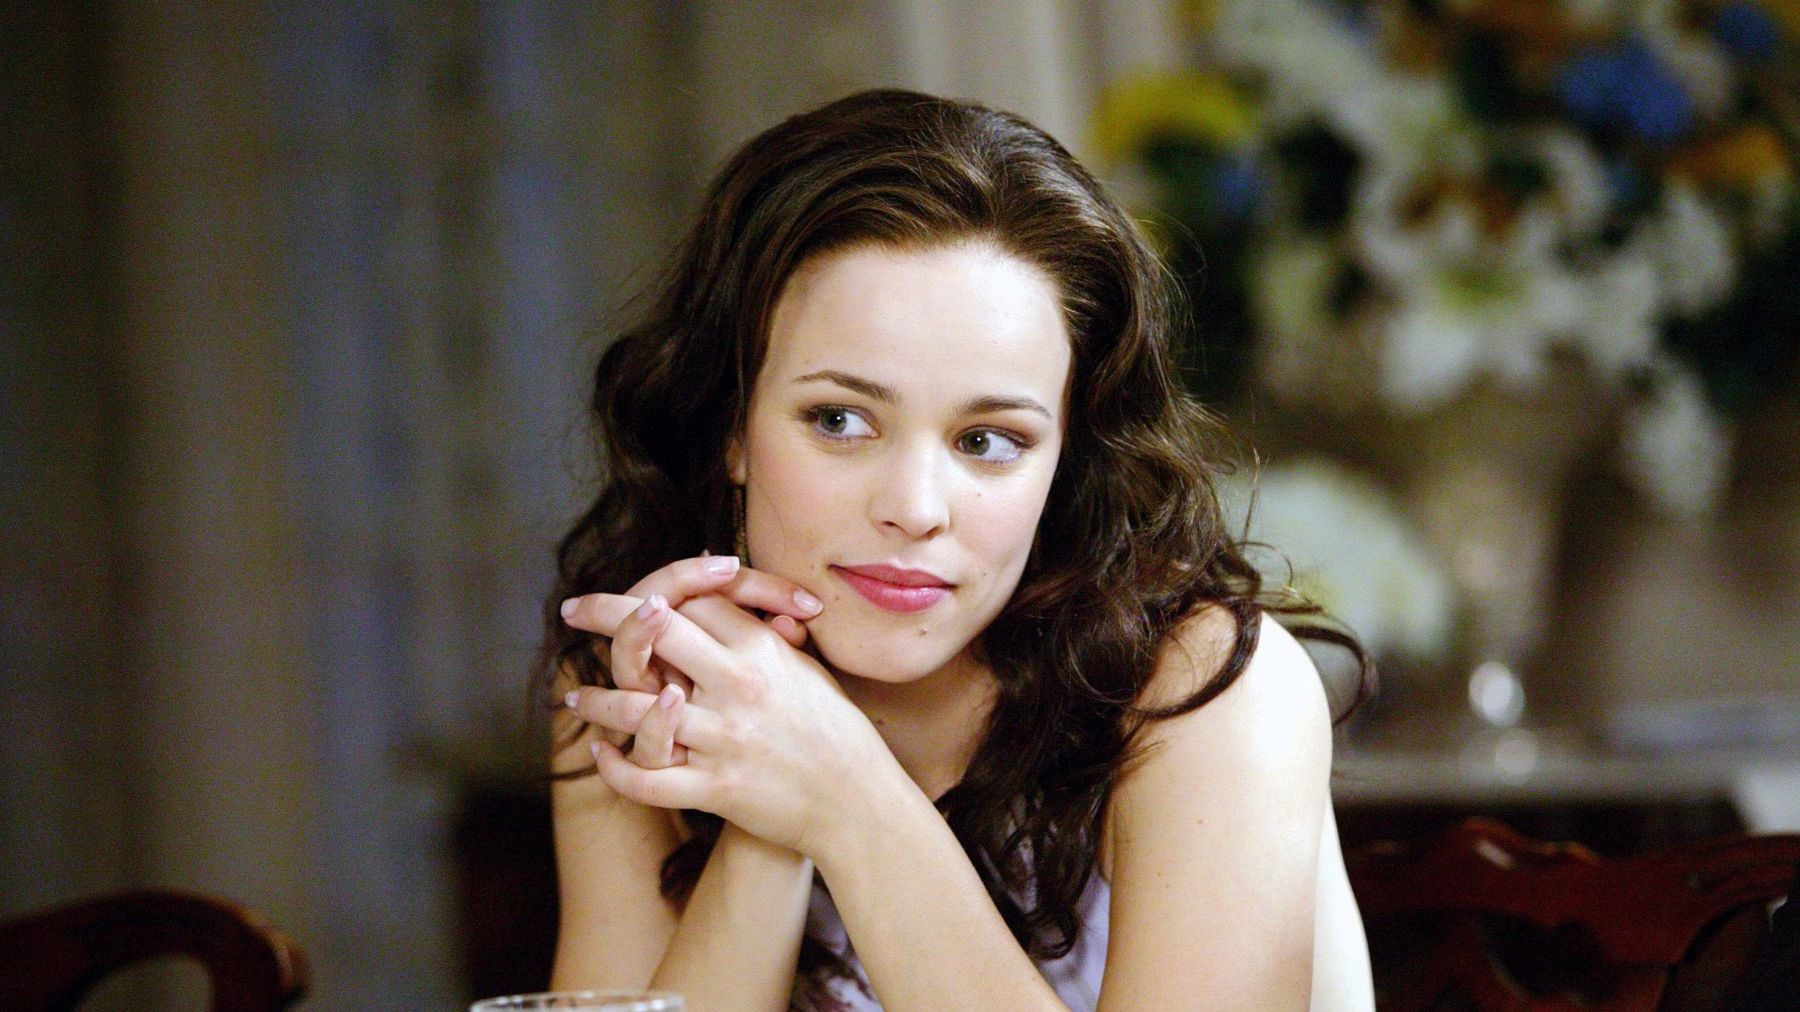 She Worked In McDonald's | 10 Facts About Rachel McAdams We Didn't Know | Her Beauty